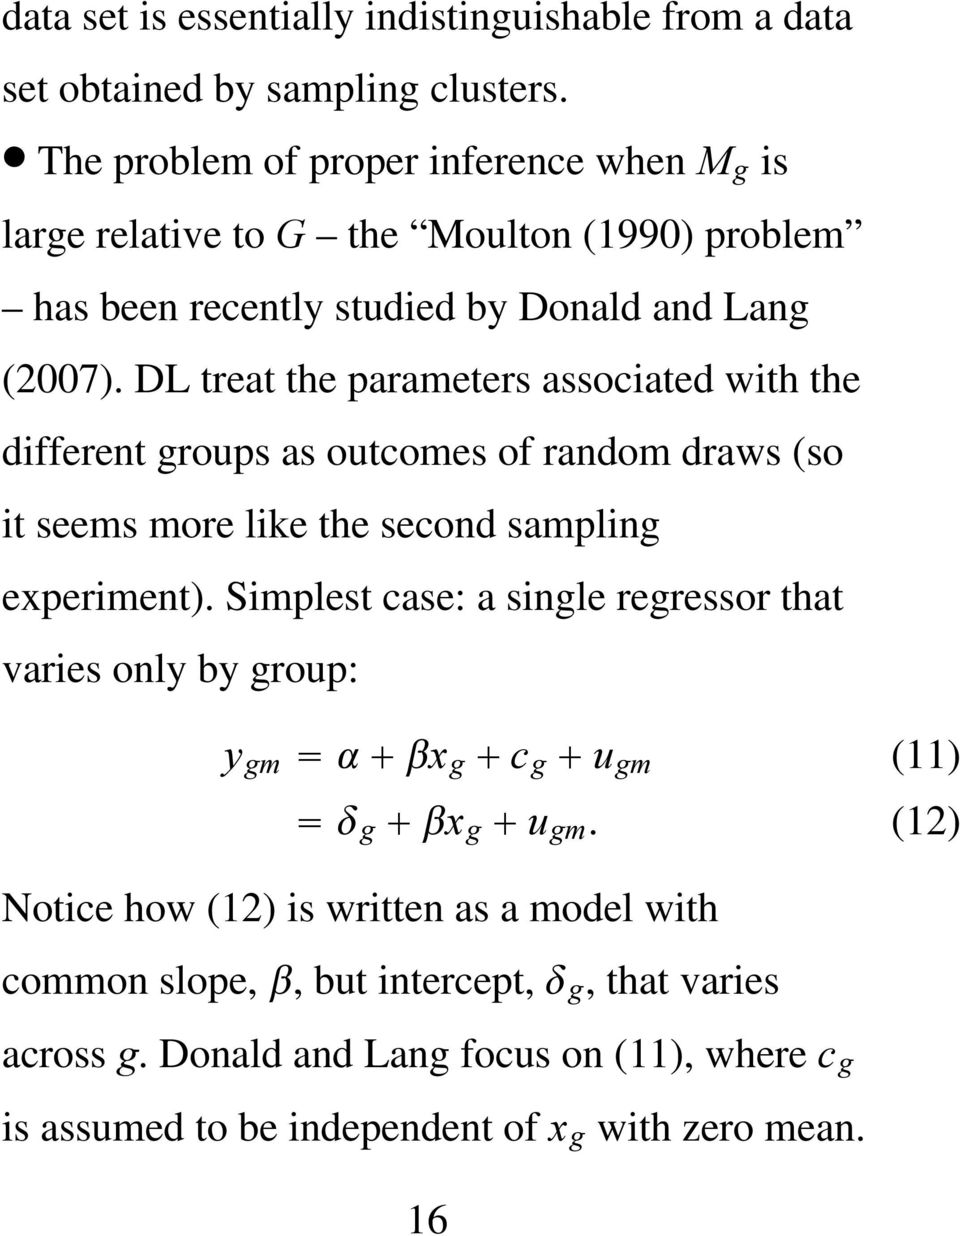 DL treat the parameters associated with the different groups as outcomes of random draws (so it seems more like the second sampling experiment).